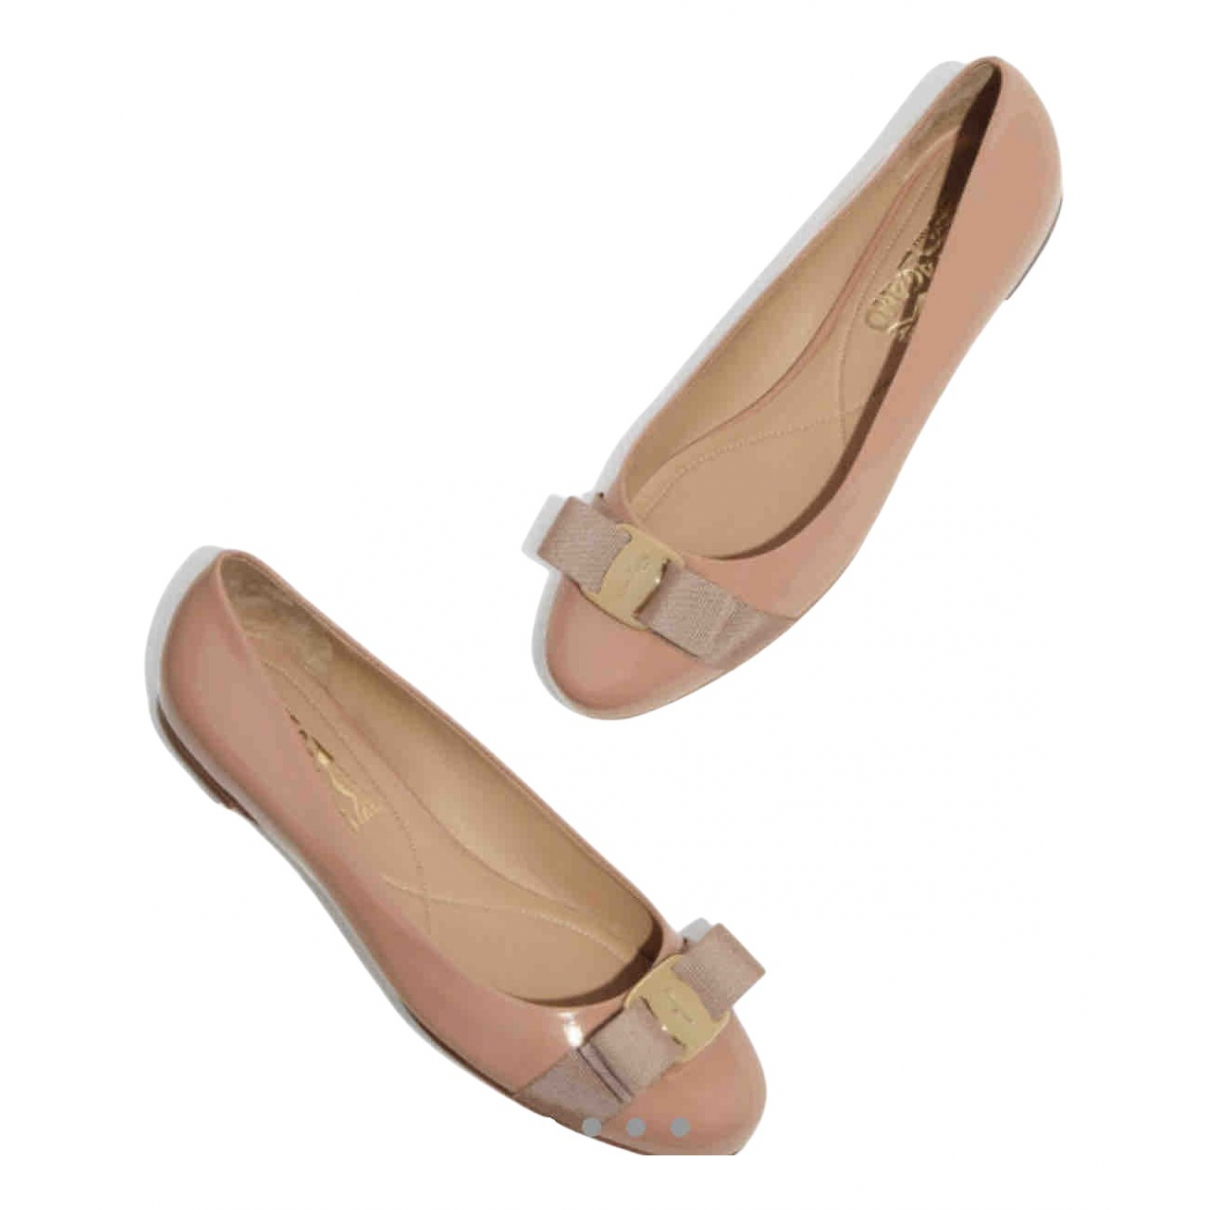 Salvatore Ferragamo Vara Pink Leather Ballet flats for Women 36 EU